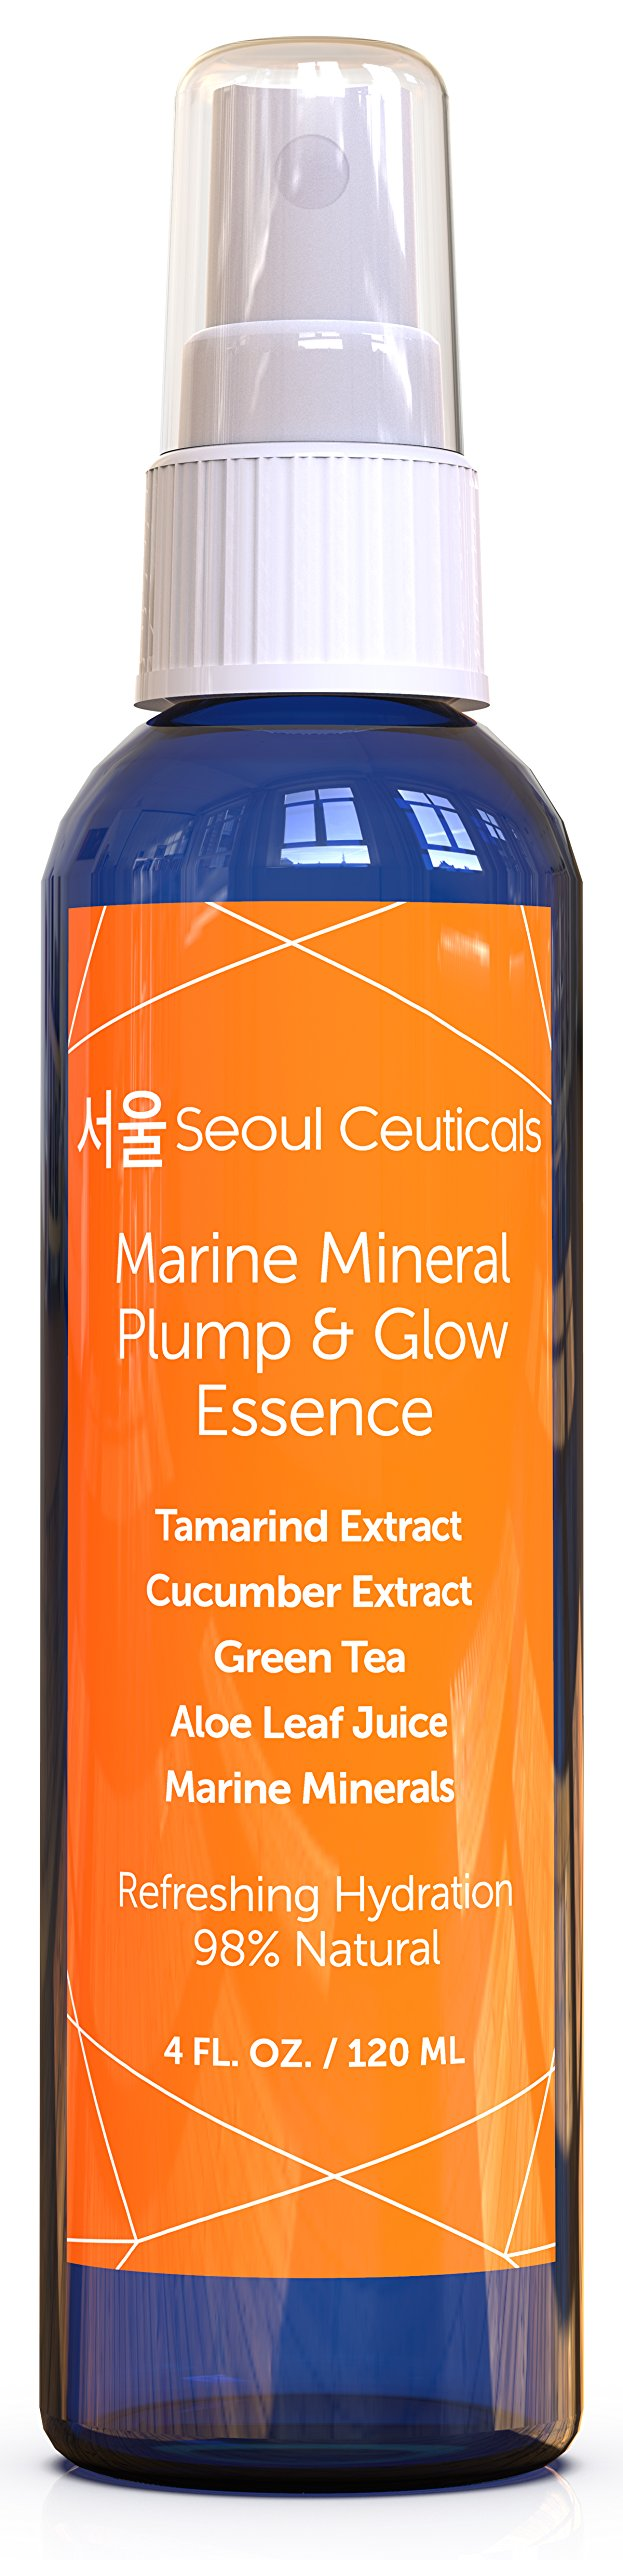 Essence Korean Skin Care - This Facial Essence Is A Must For An Effective Korean Beauty Routine -Contains Japanese Green Tea, Aloe, Cucumber, Marine Minerals & Tamarind Extract for that Healthy Glow